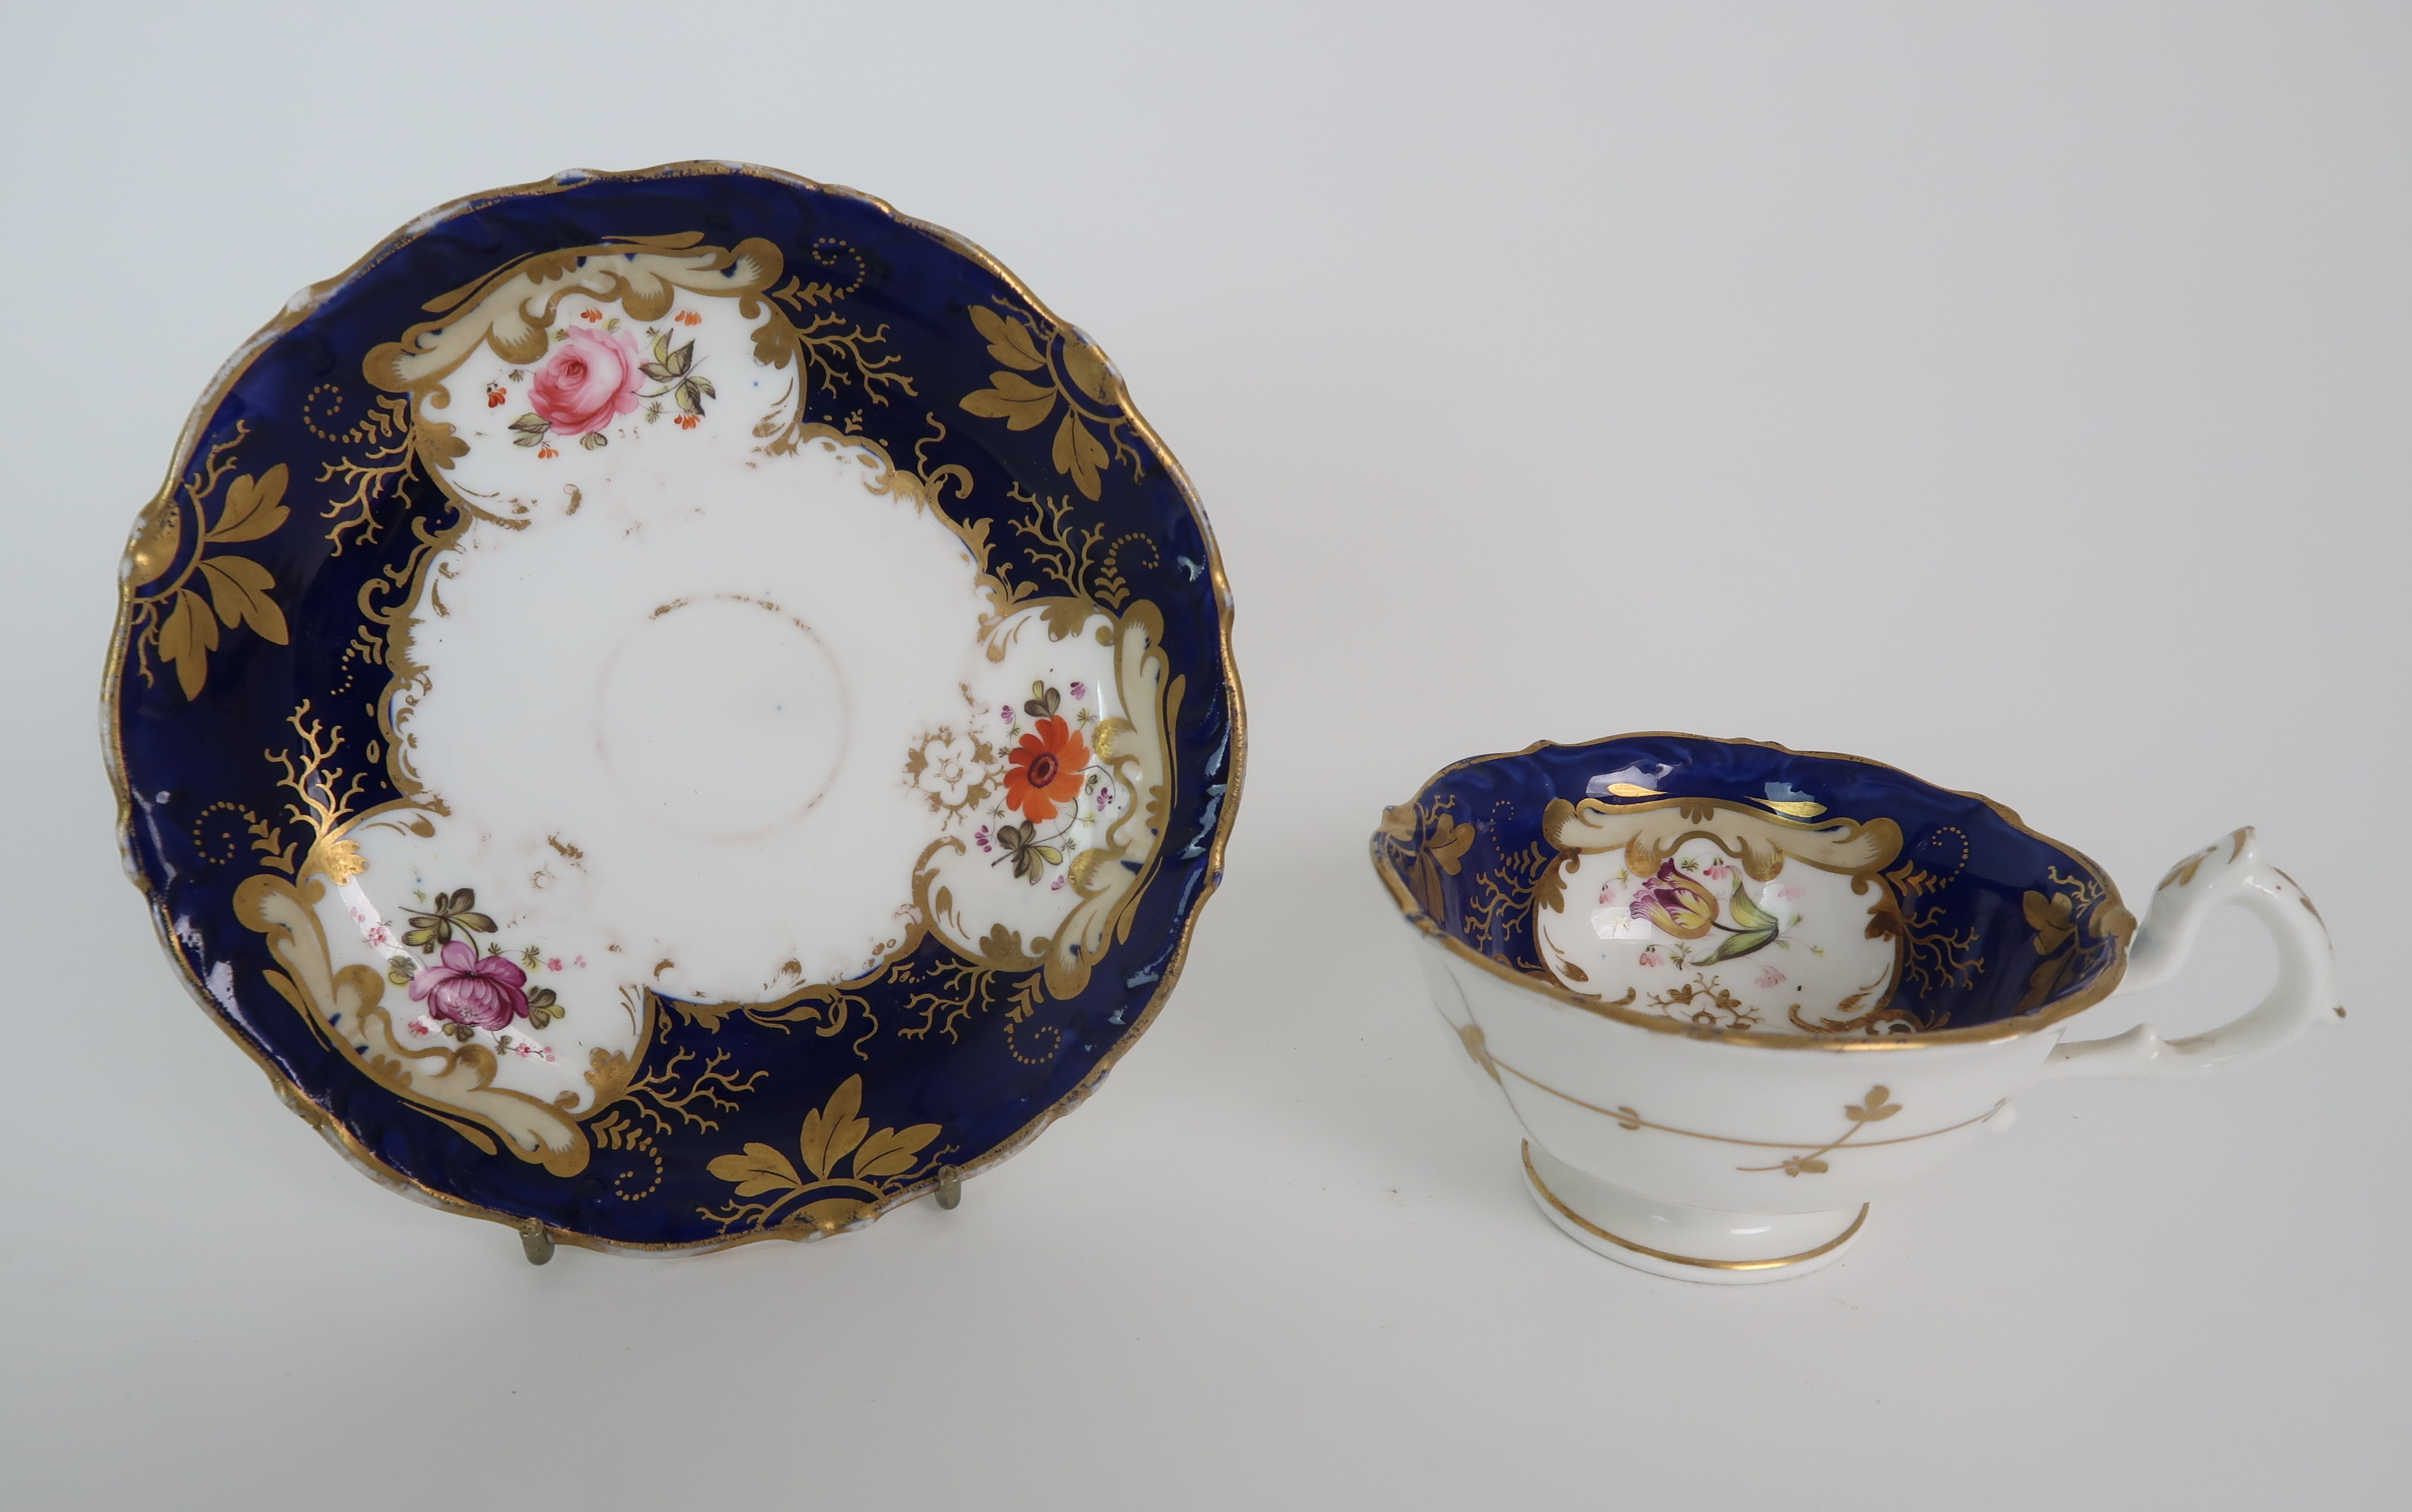 A COLLECTION OF 19TH CENTURY ENGLISH BLUE AND GILT DECORATED TEA AND COFFEE WARES including a - Image 8 of 23